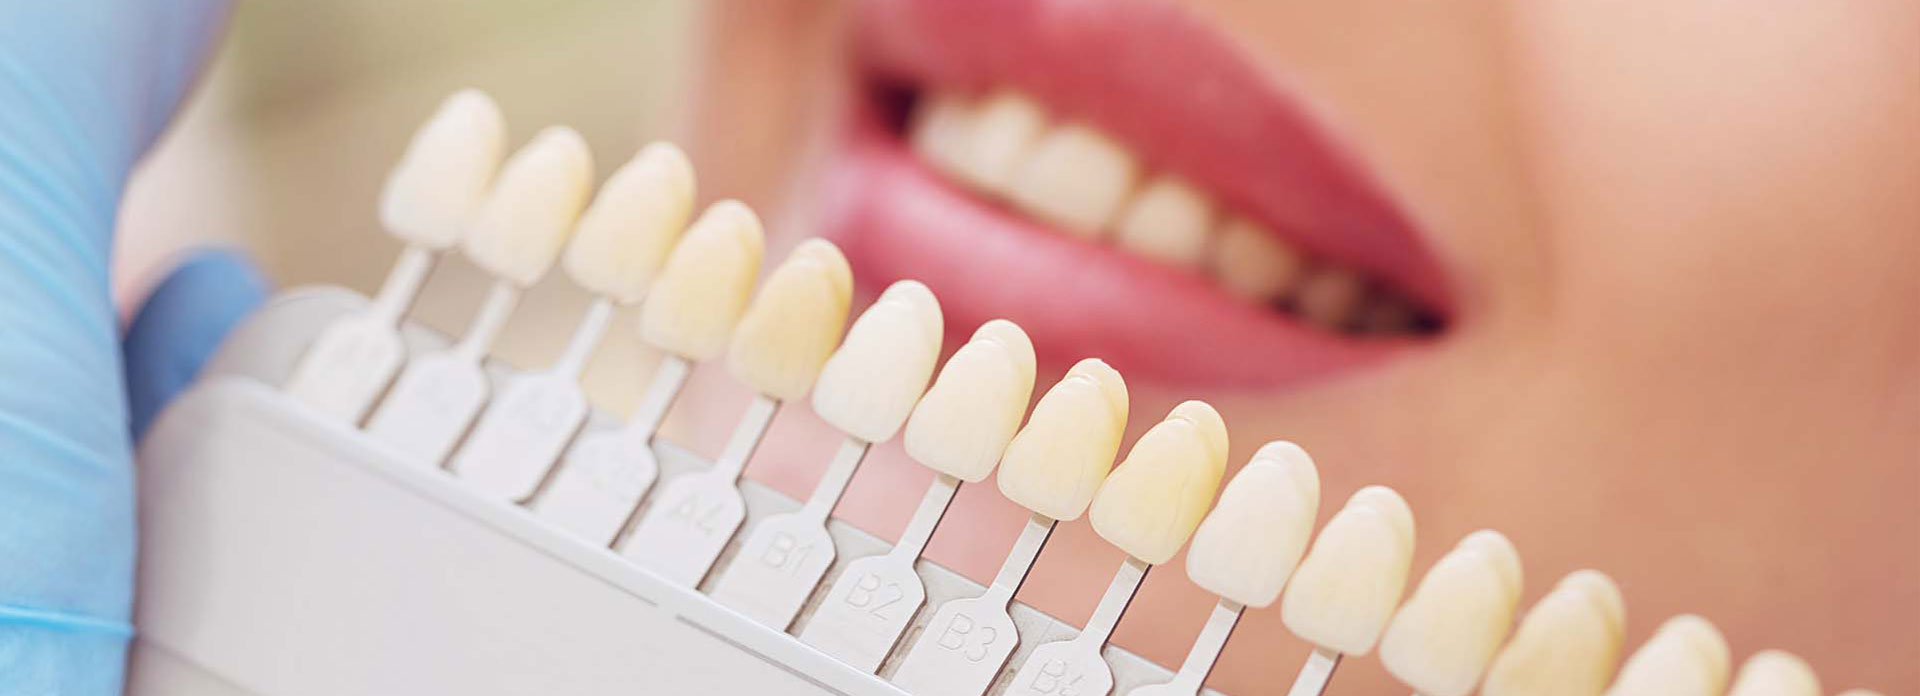 A dental staff holding a tooth color matching palettes